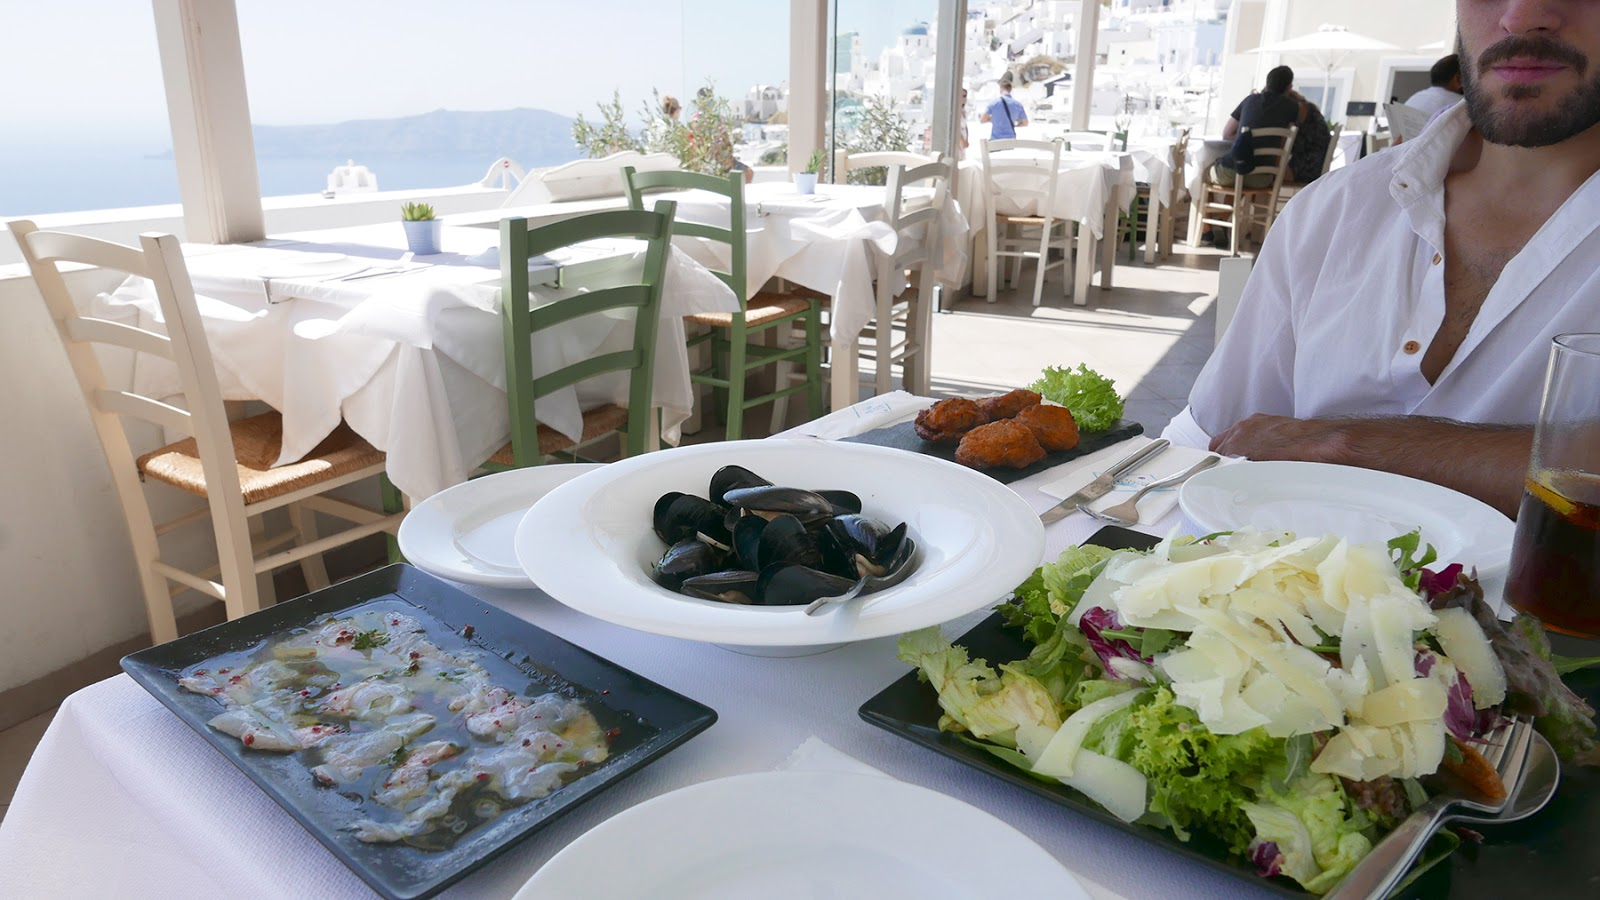 Euriental | luxury travel & style | Santorini Greece, Imerovigli Aegeon Restaurant